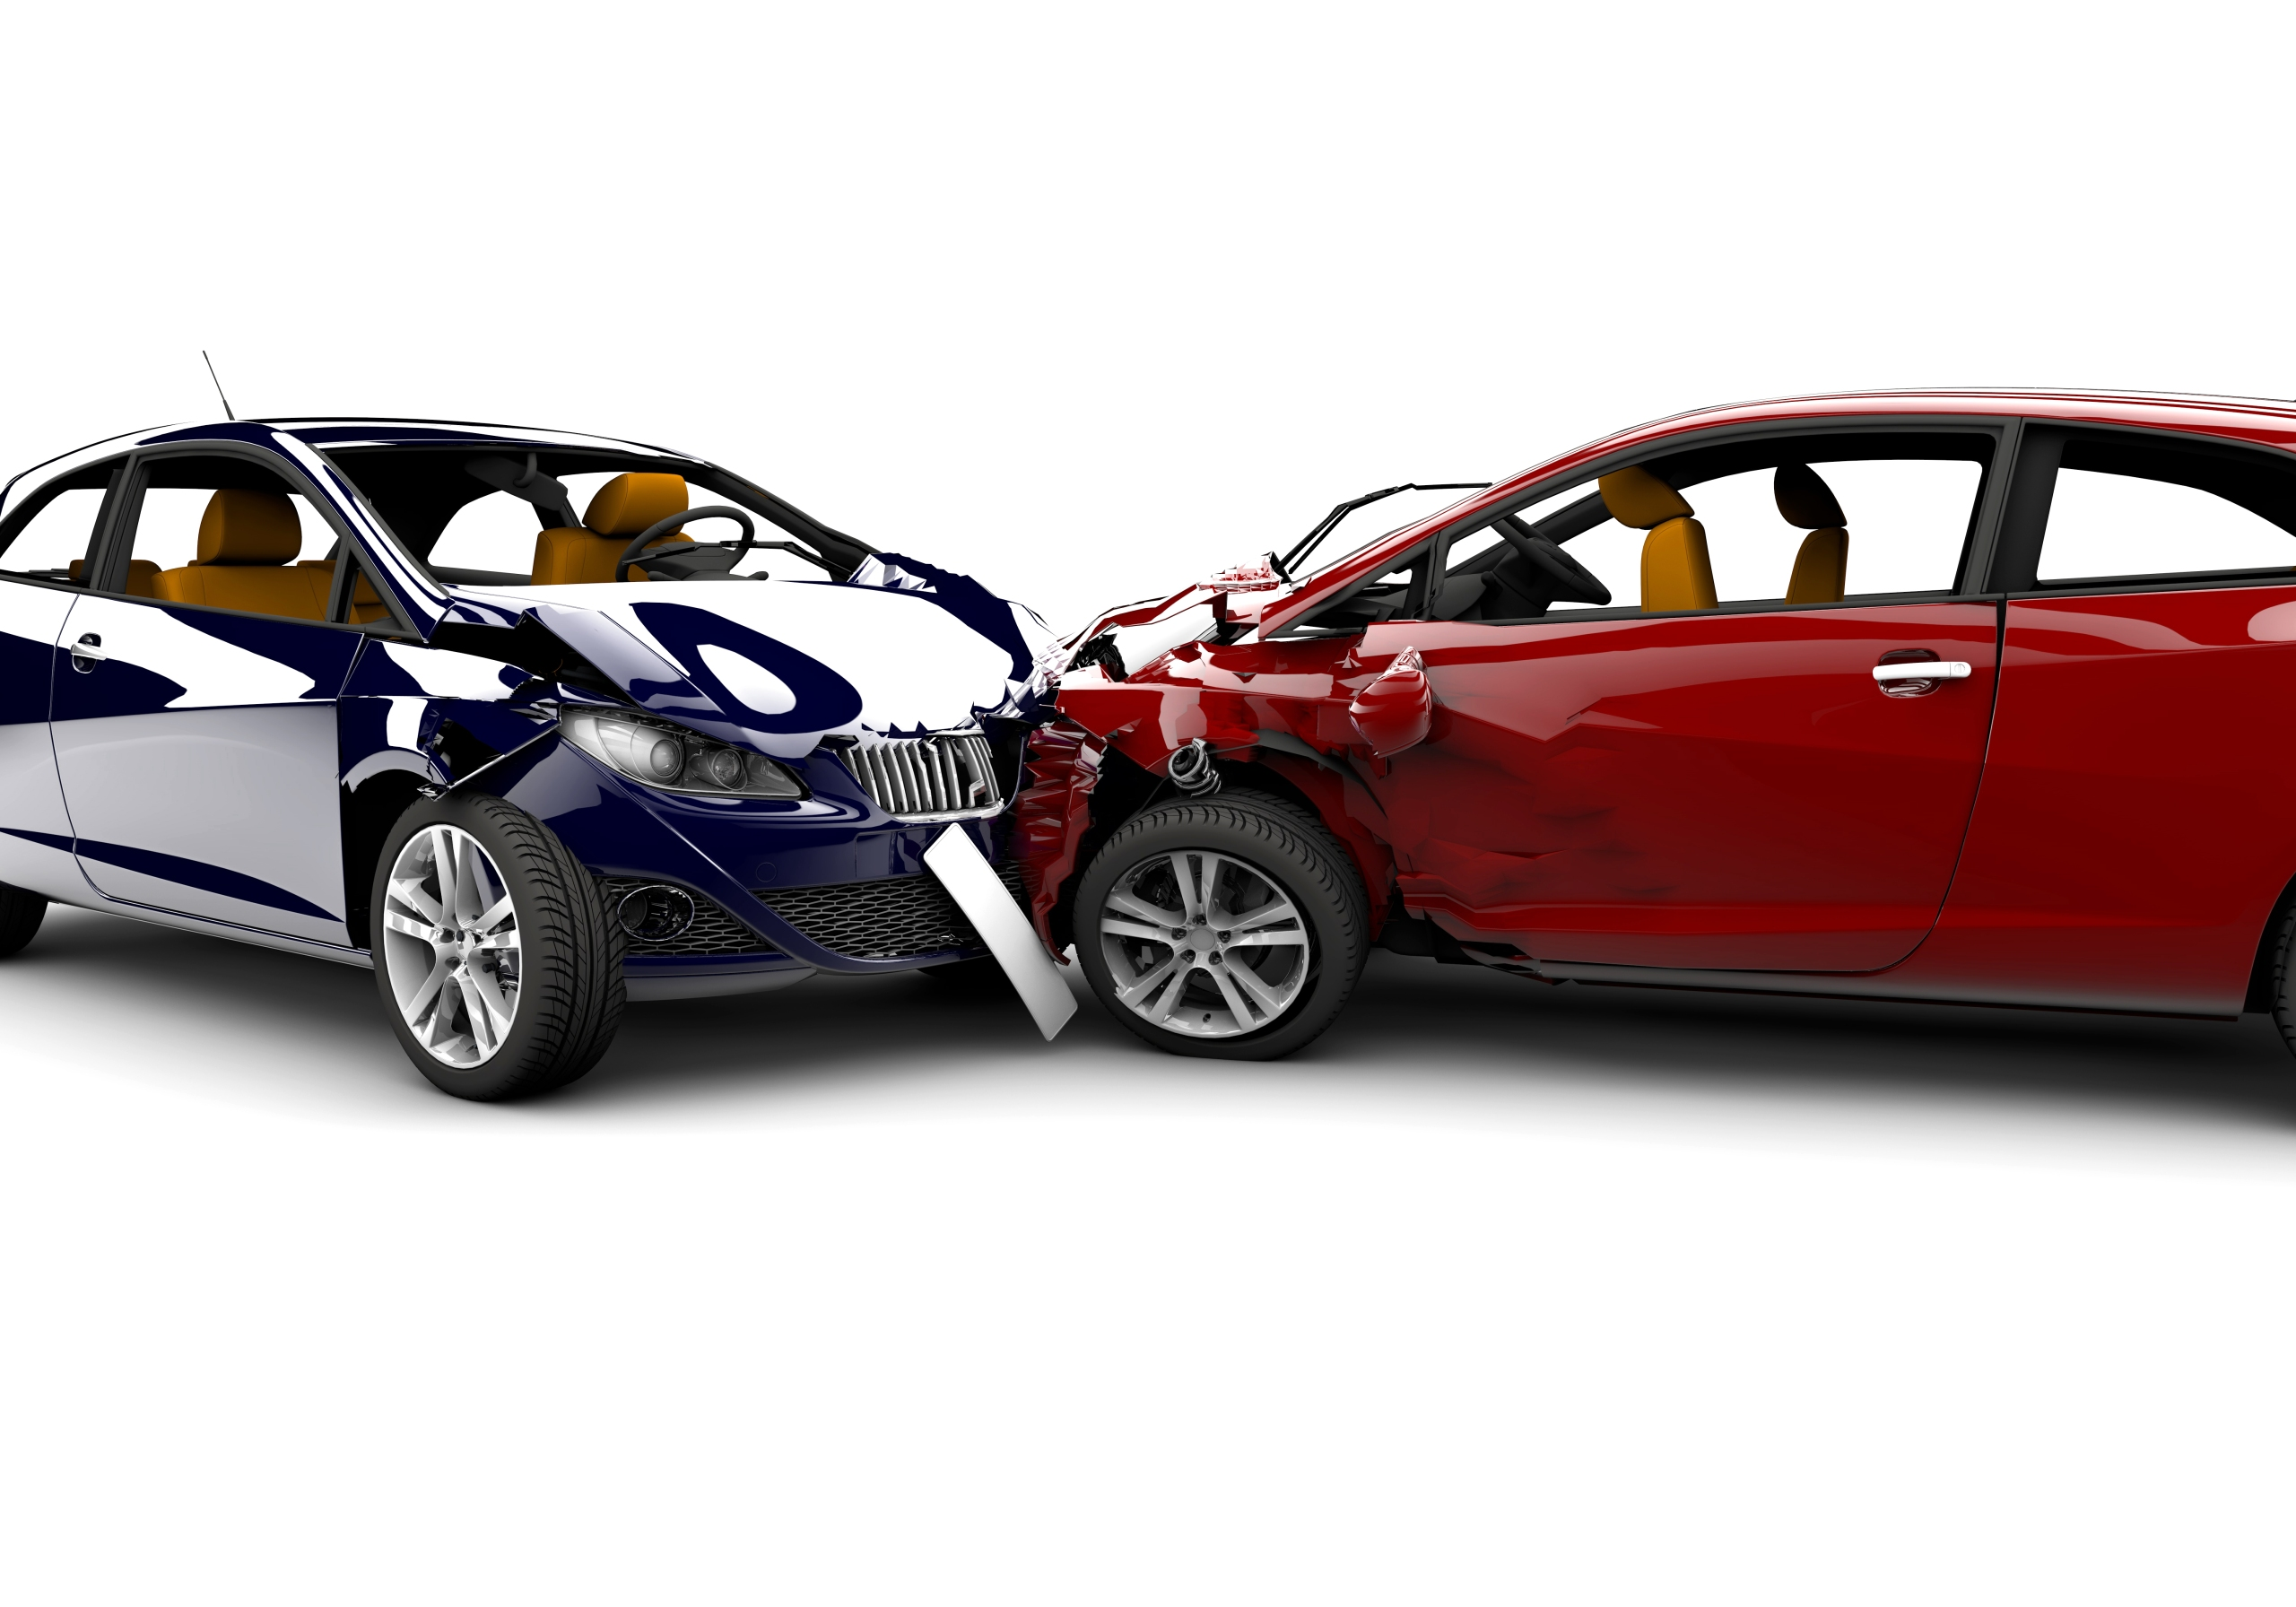 Reviews car insurance companies uk 14